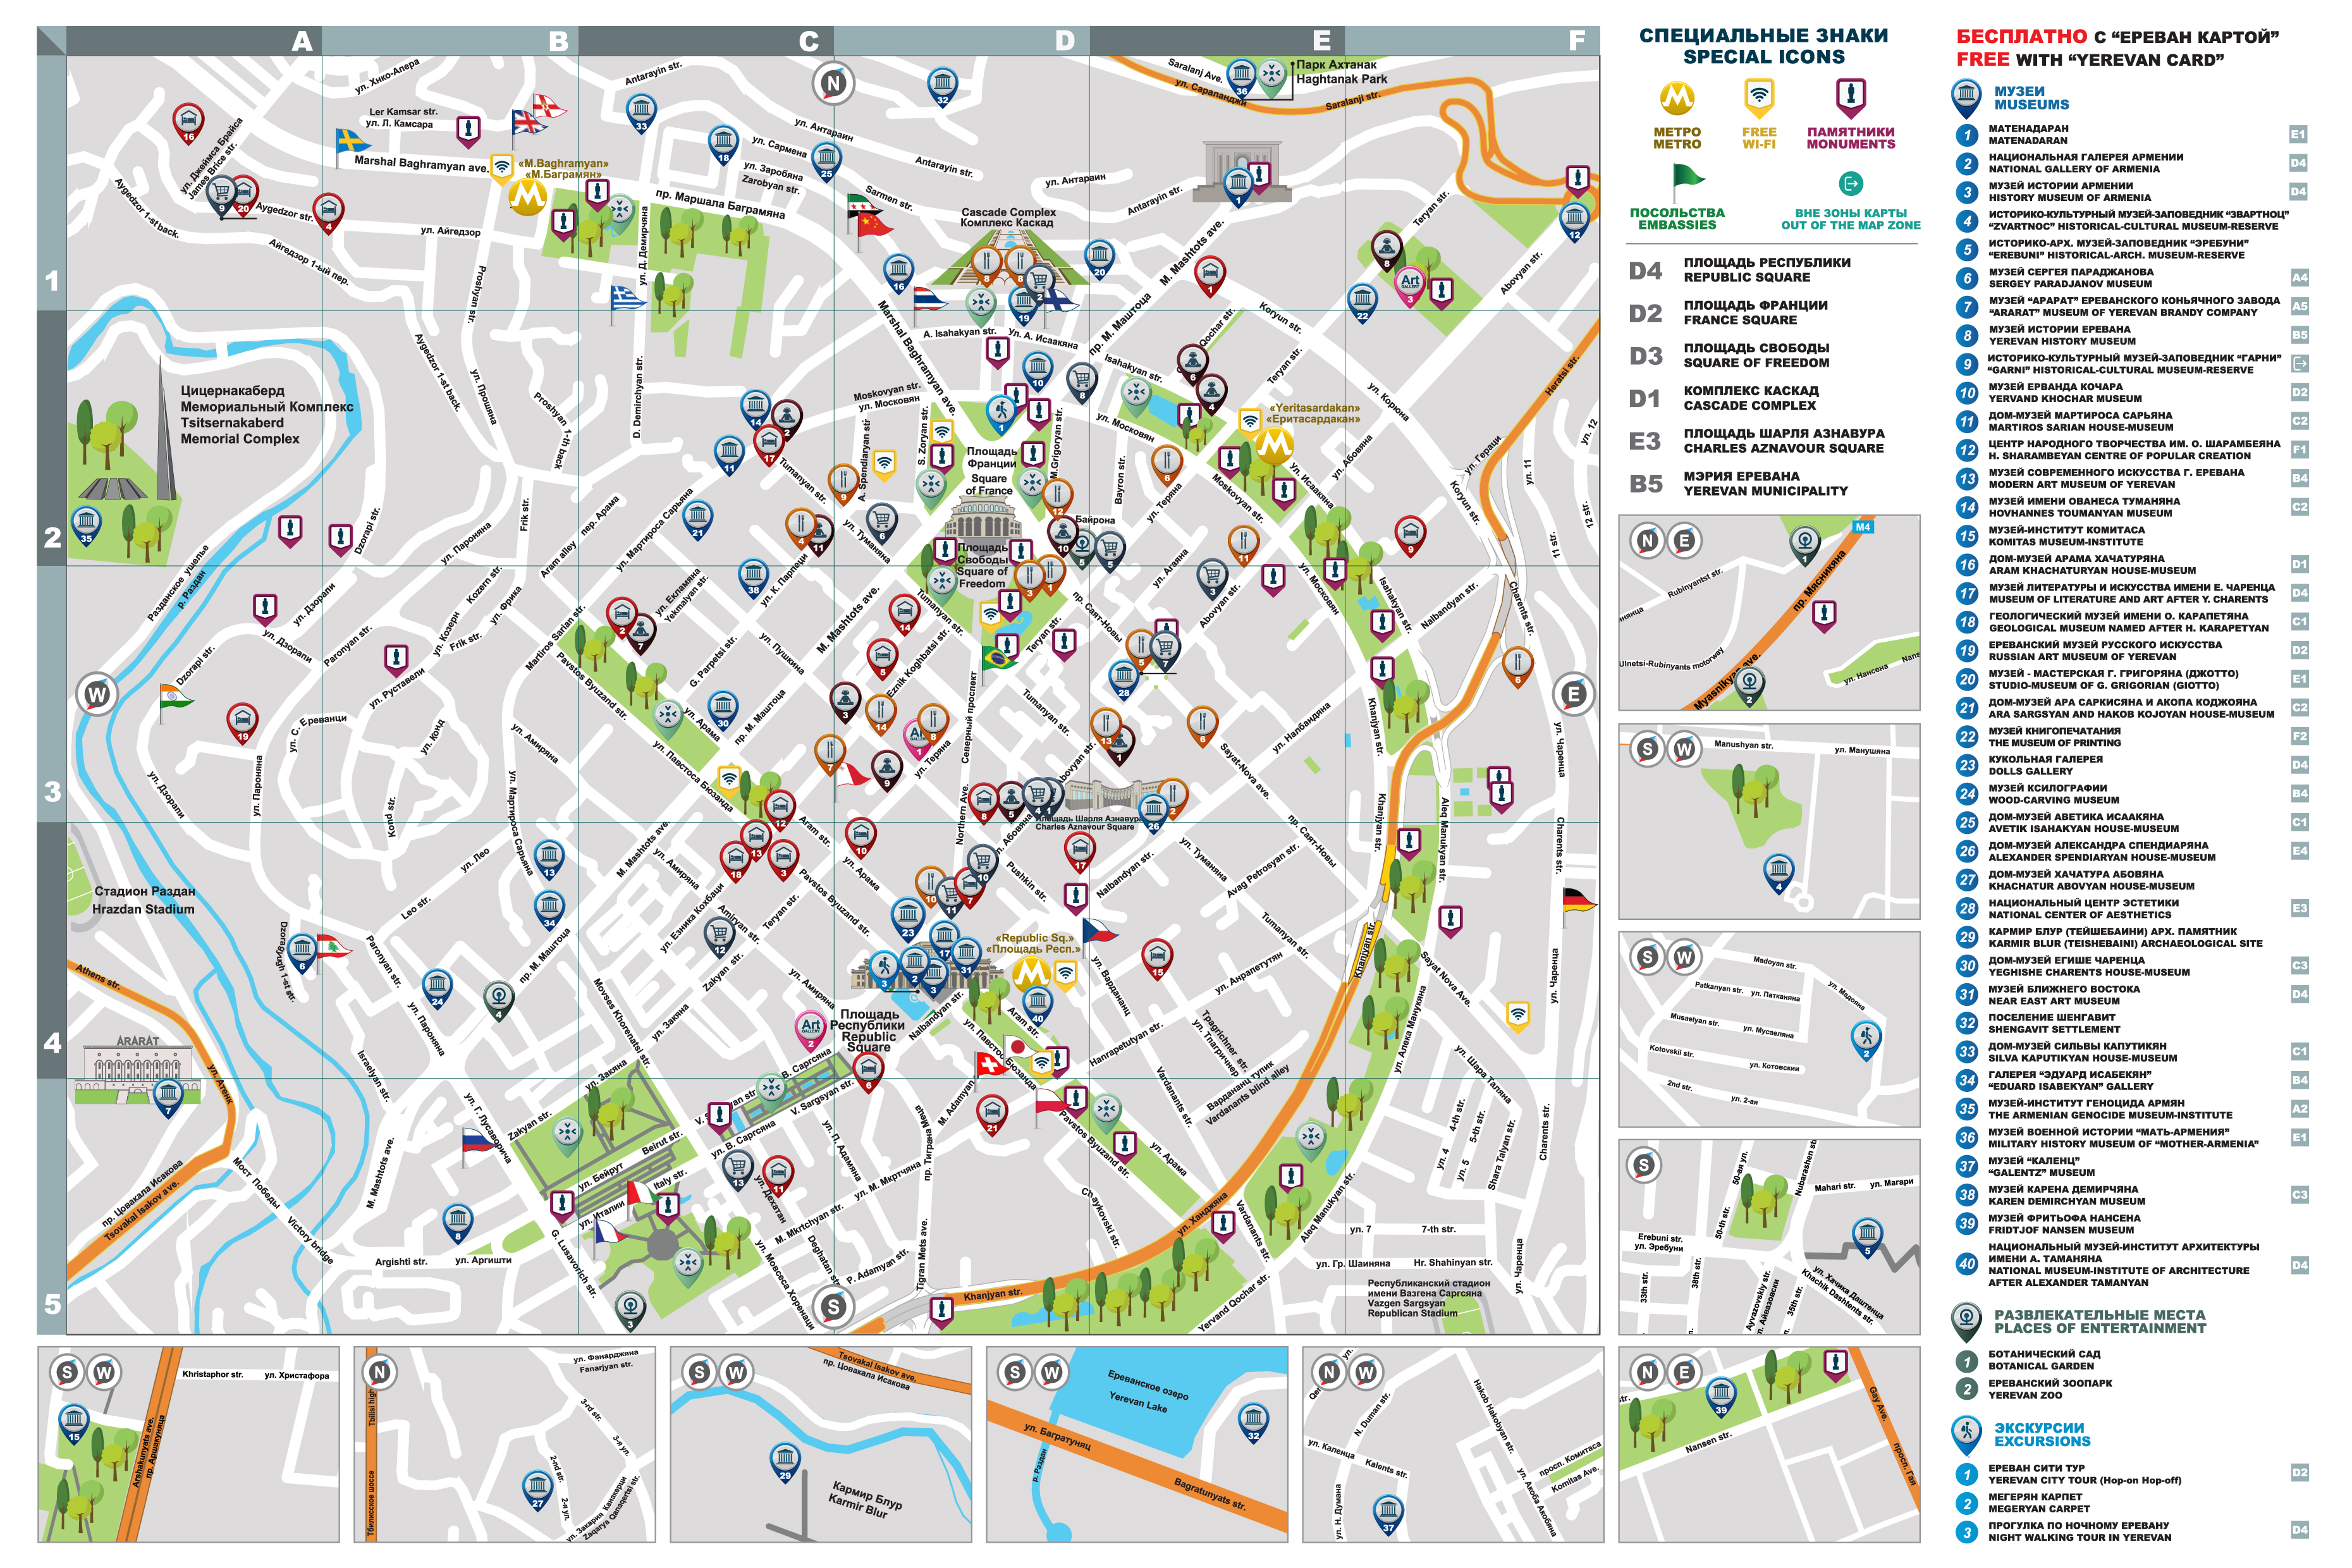 FileYerevan Card Mapjpg Wikimedia Commons - yerevan map